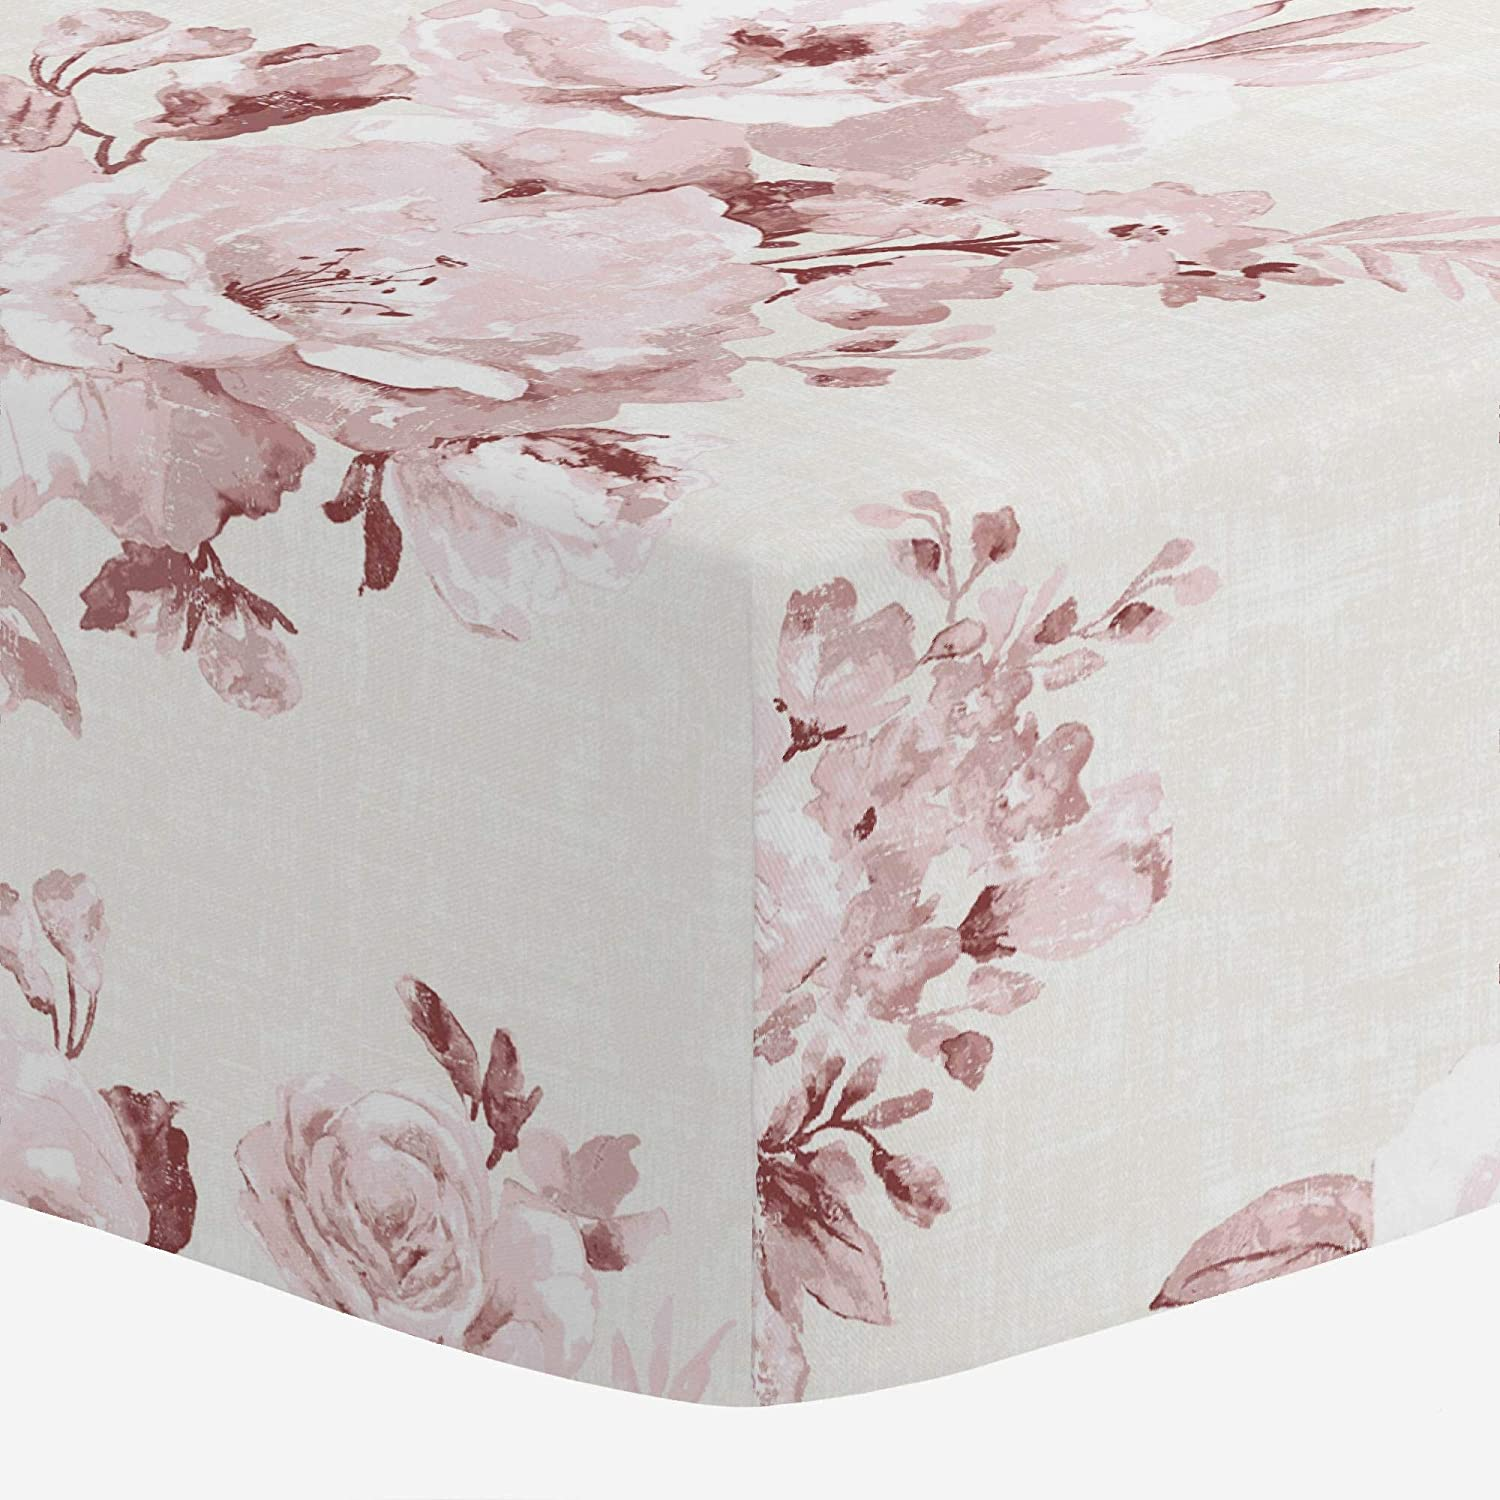 Carousel Designs Rose Farmhouse Floral Crib Sheet - Organic 100% Cotton Fitted Crib Sheet - Made in The USA